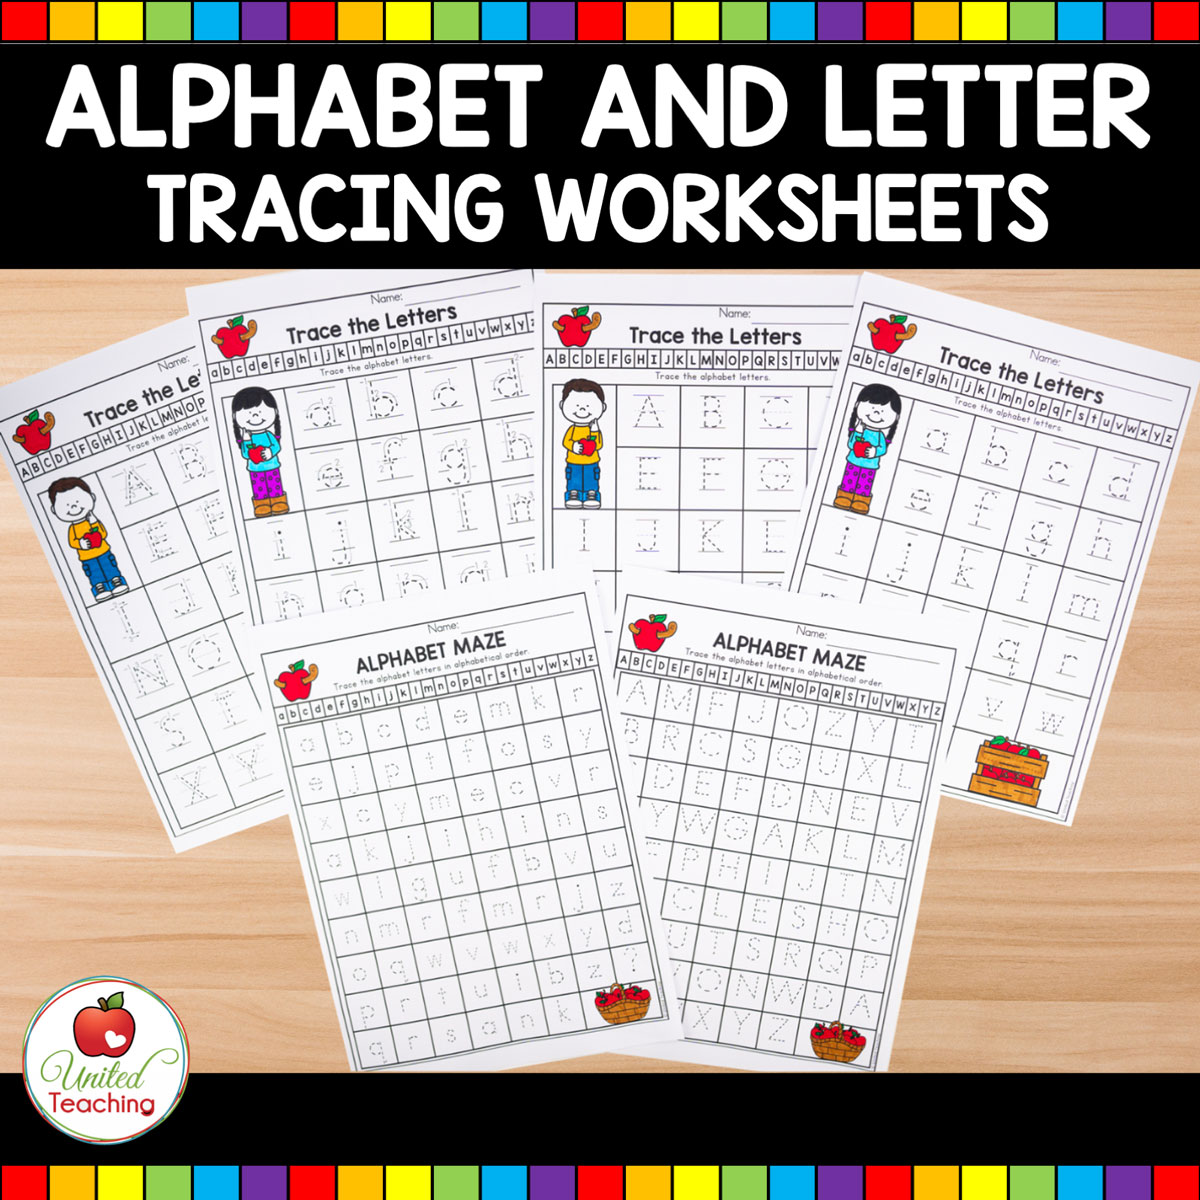 Letter Tracing Worksheets Main Image